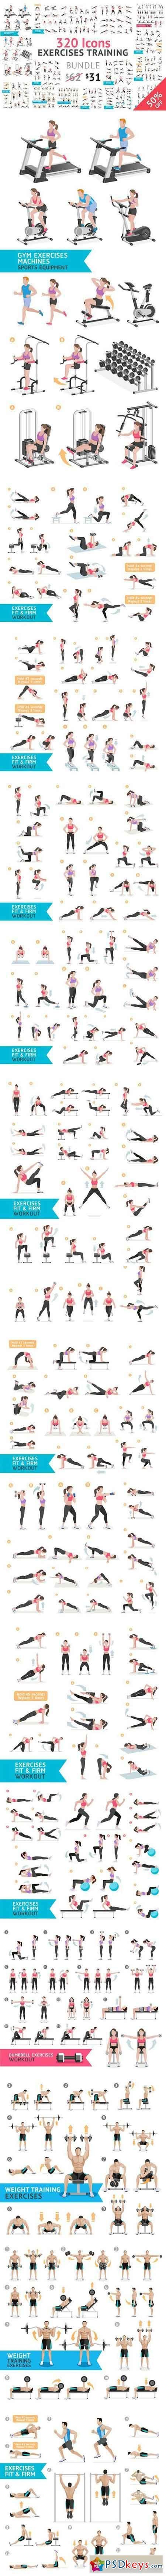 Fitness Aerobic and Exercises Icons 1063017,  #aerobic #Exercises #exercisesicon #FITNESS #Icons